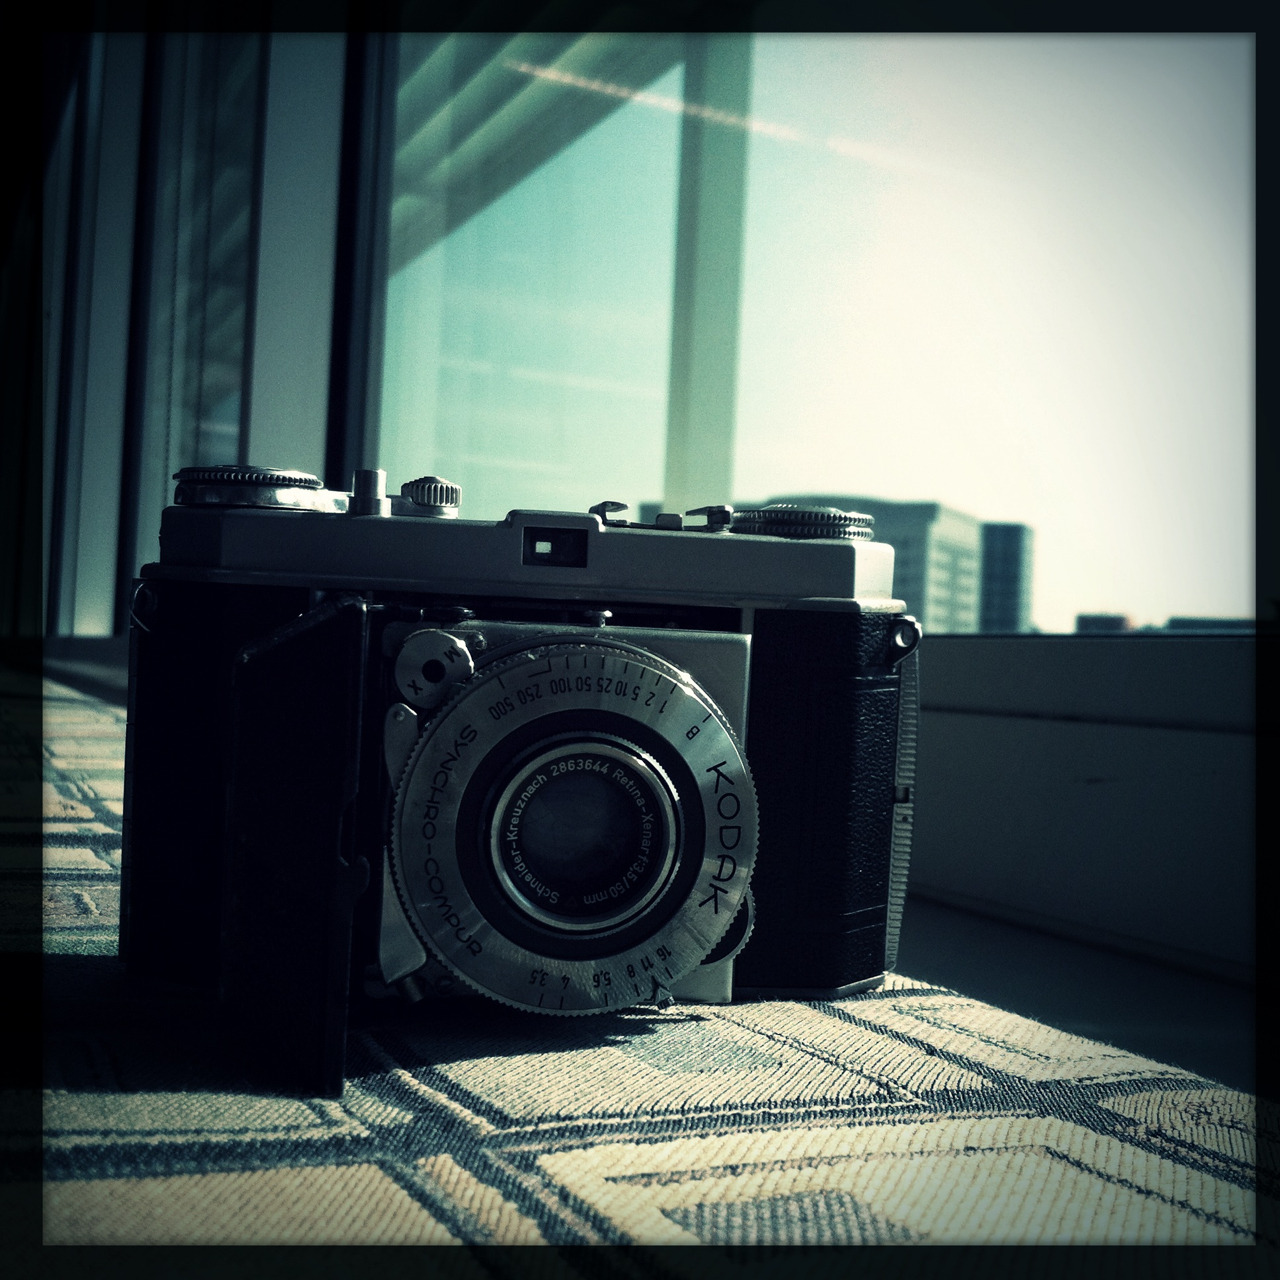 Latest thrift store photography find: A Kodak Retina Ia camera for $4.